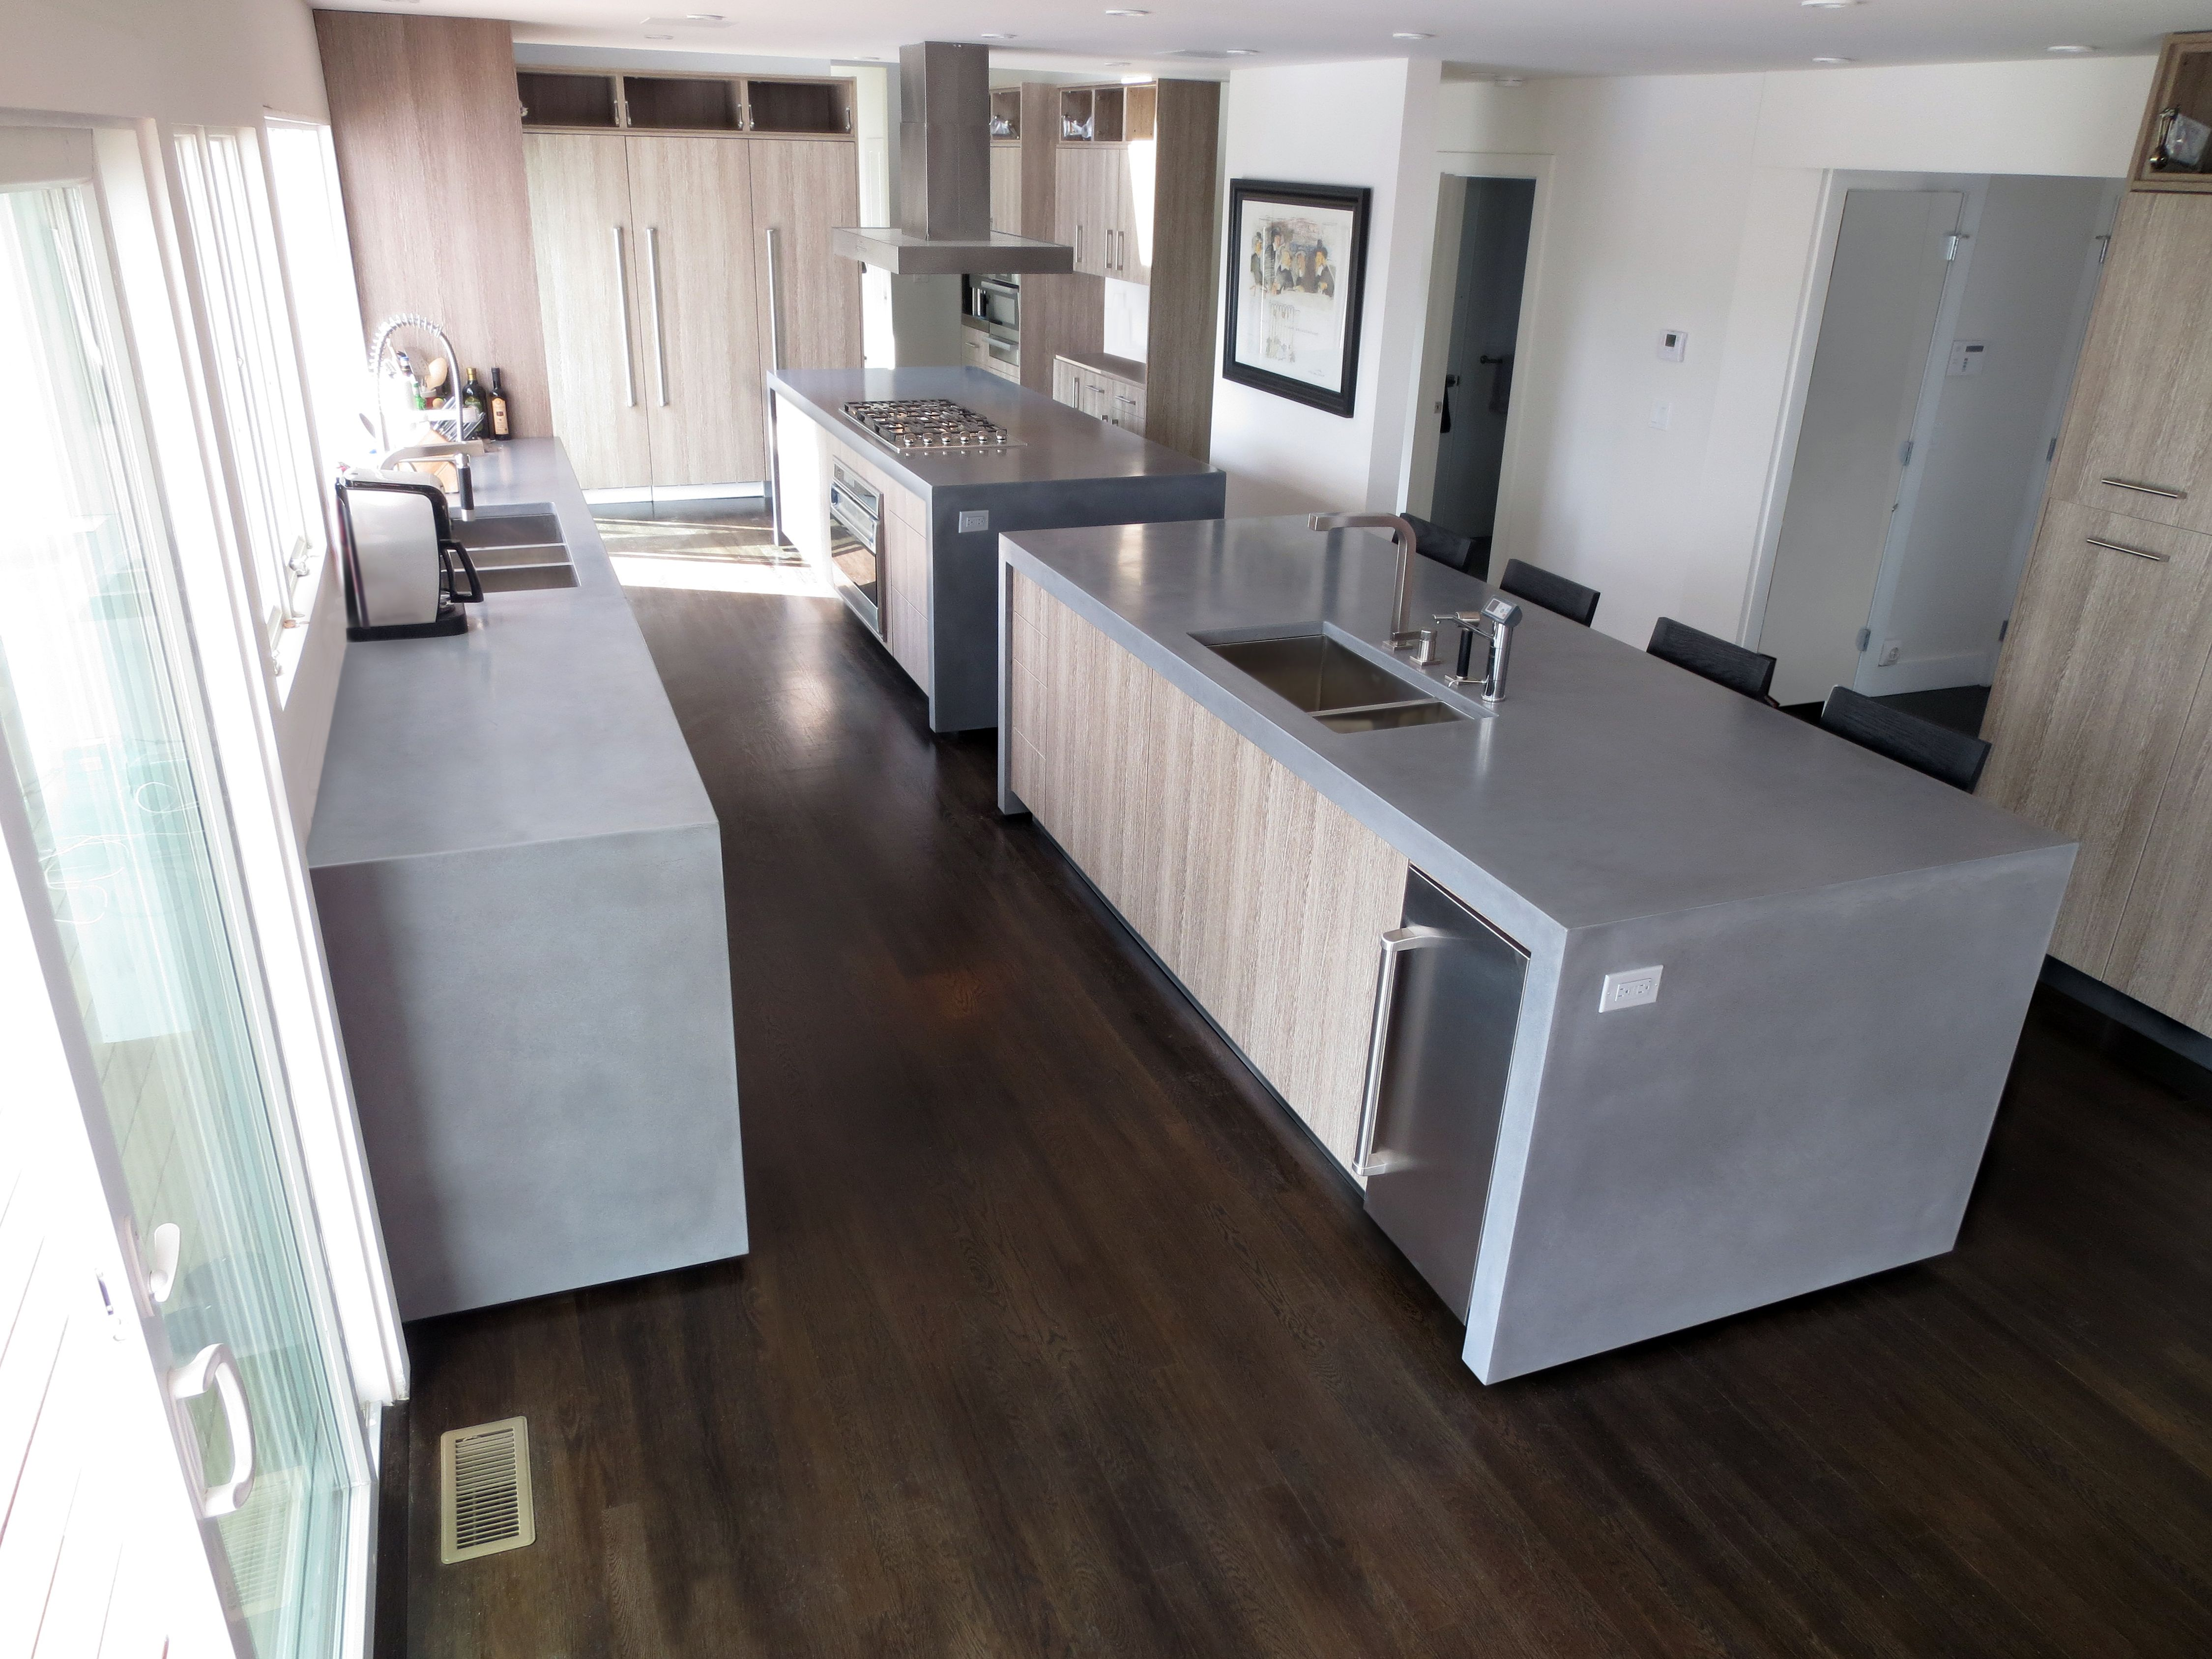 Concrete Kitchen Countertops Blinds Island With Double Waterfall